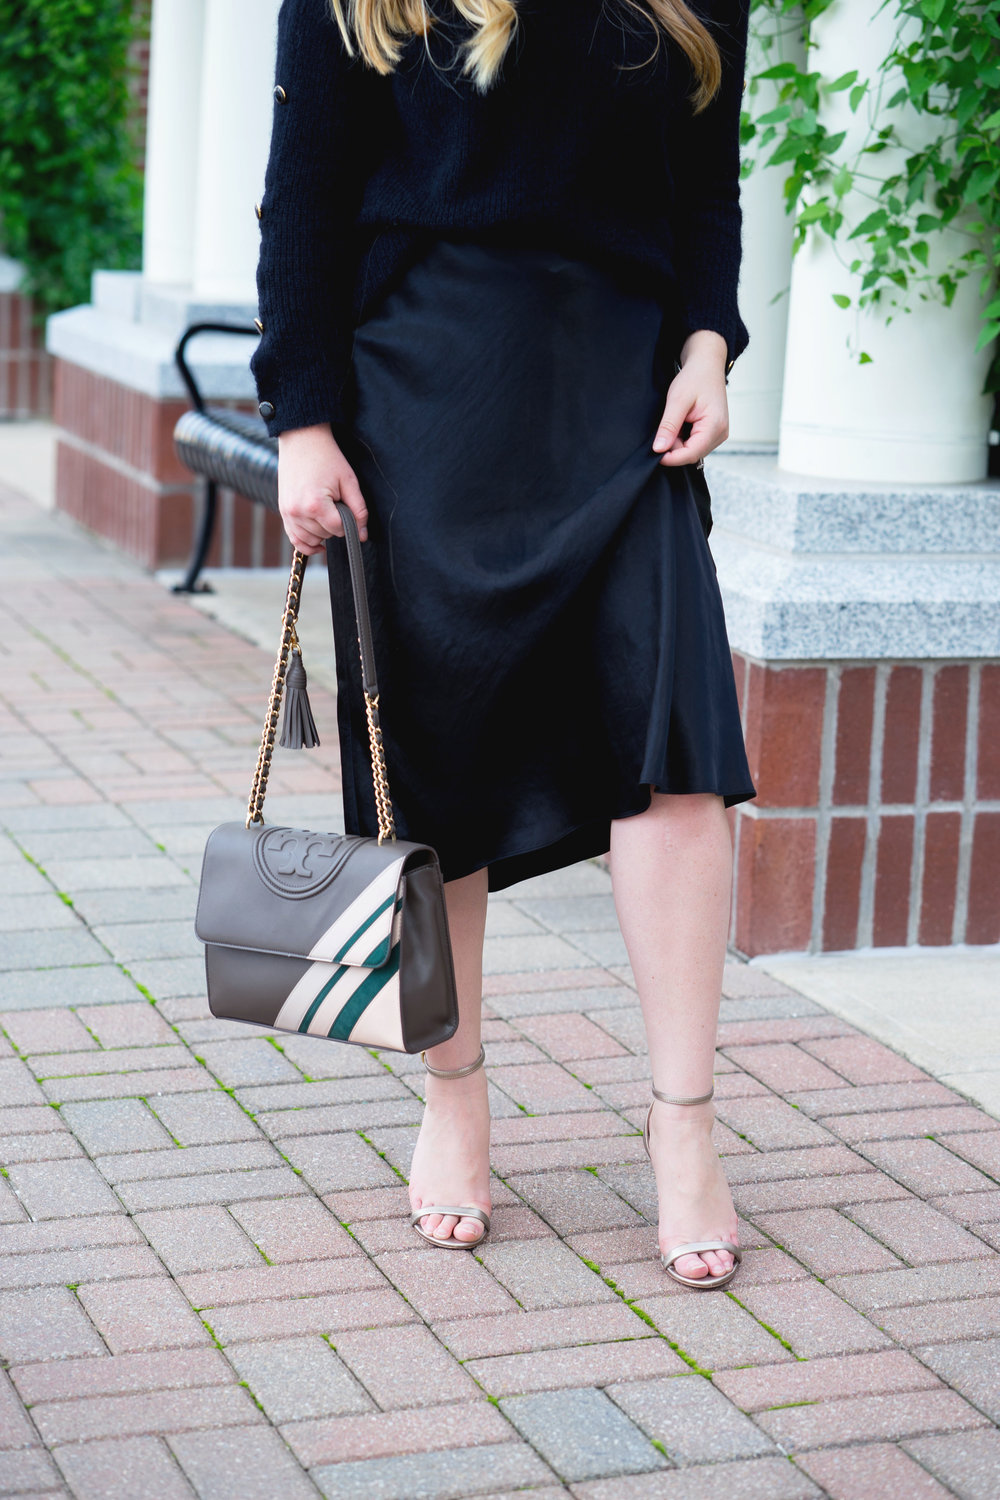 Maggie a la Mode - How to Wear the Satin Skirt